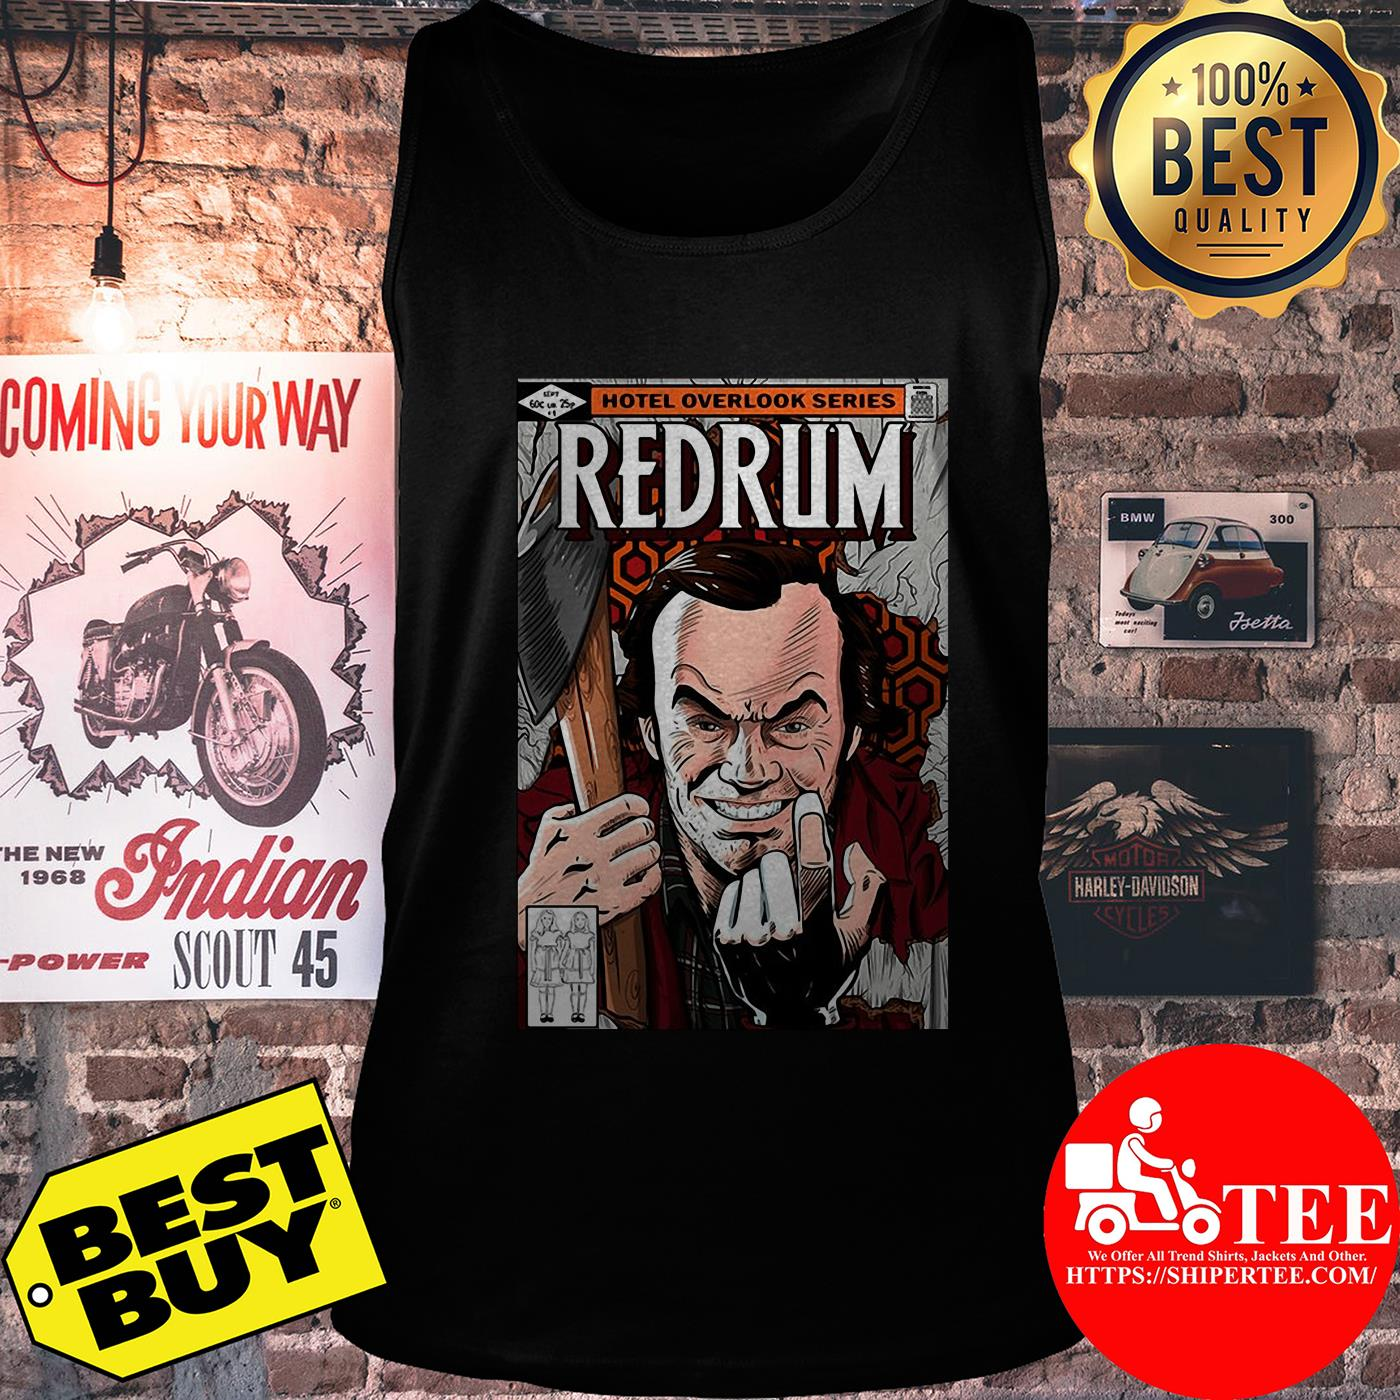 Redrum hotel overlook series by Mariano San tank top